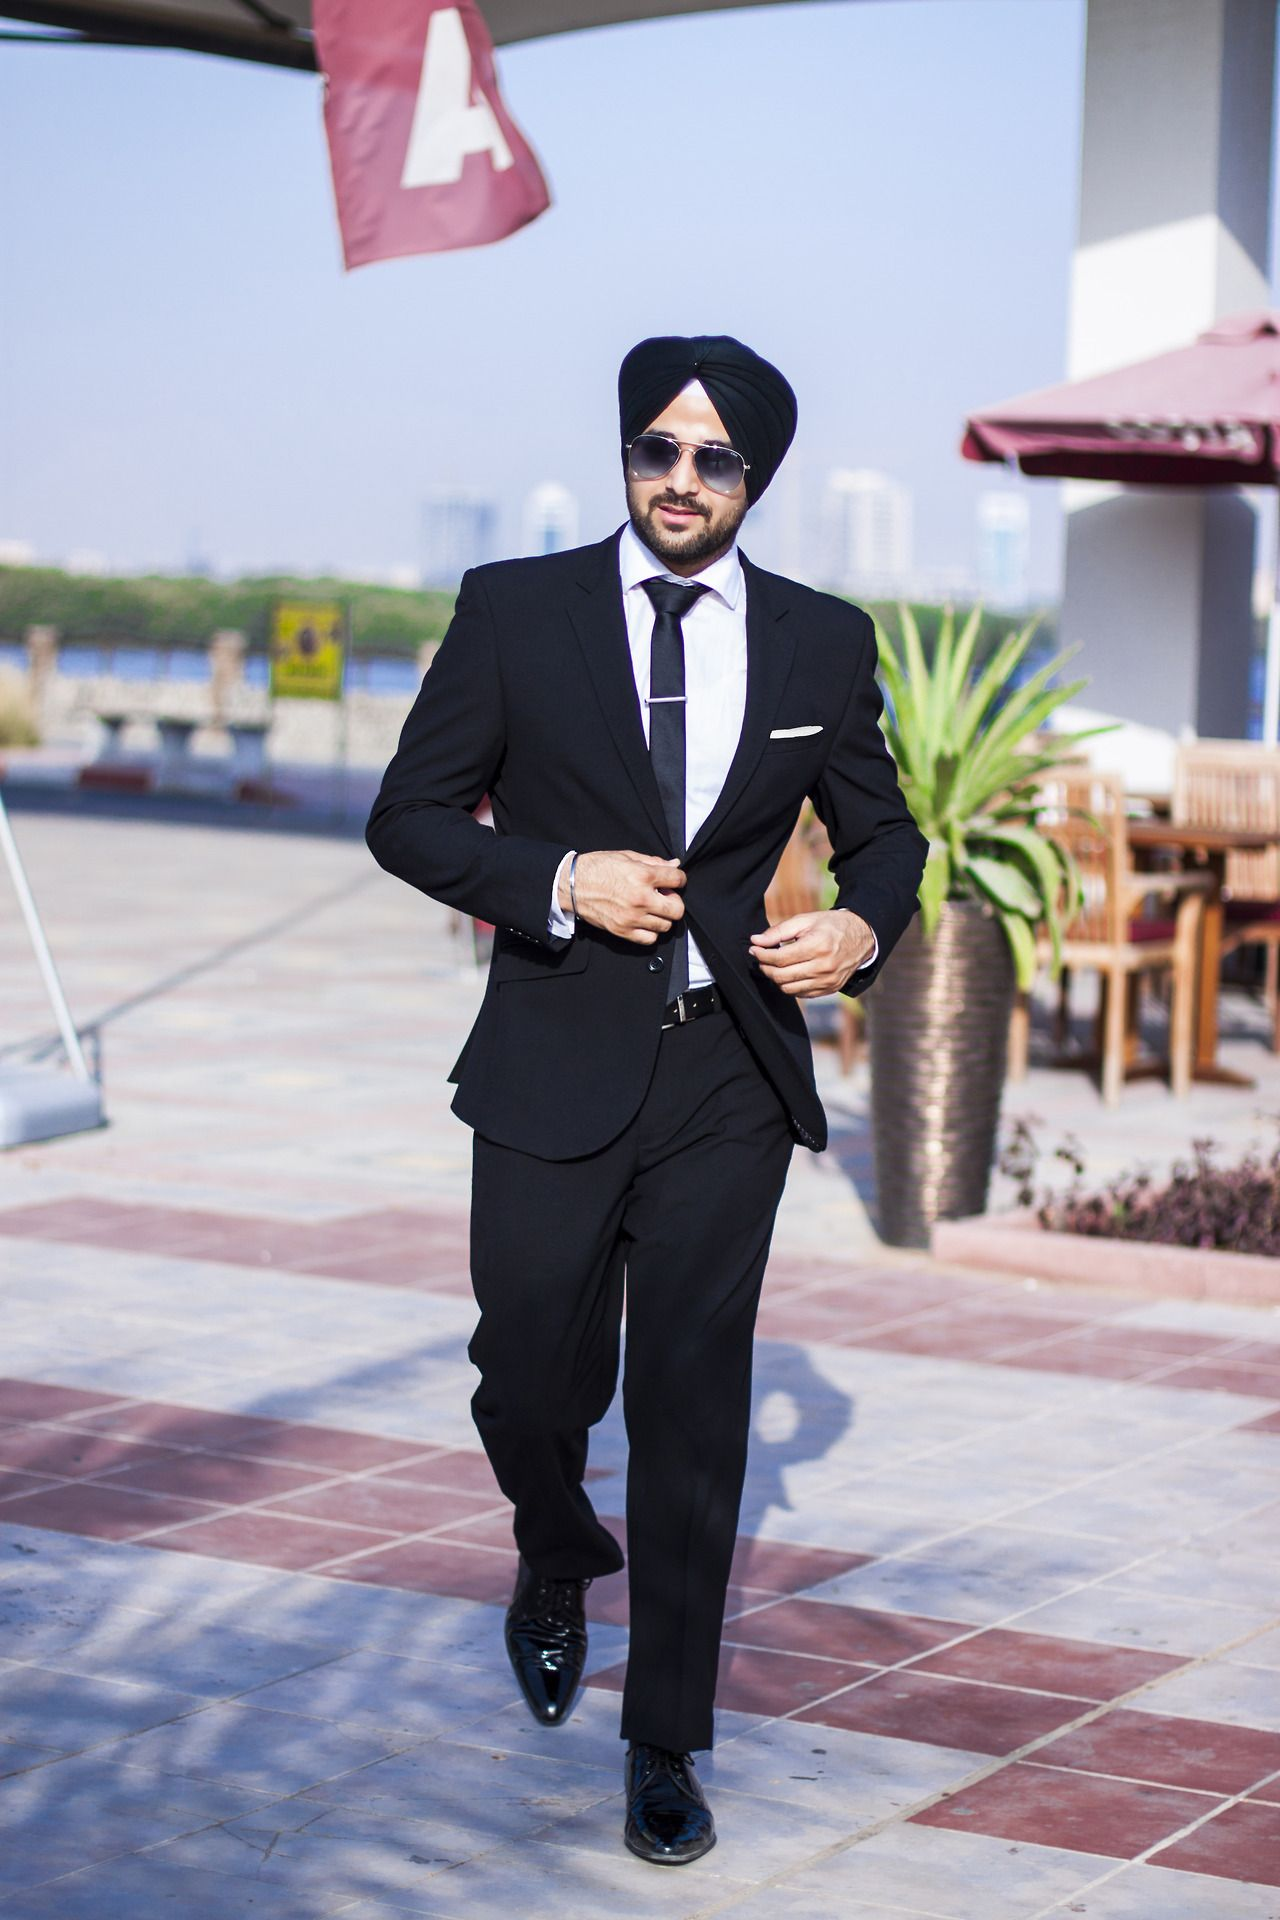 Sikh Model Men Fashion Style Urban Sardar Black Suit Dasi Neck Tie Slim Polos Wedding Best Man Square Orange Surjit Singh